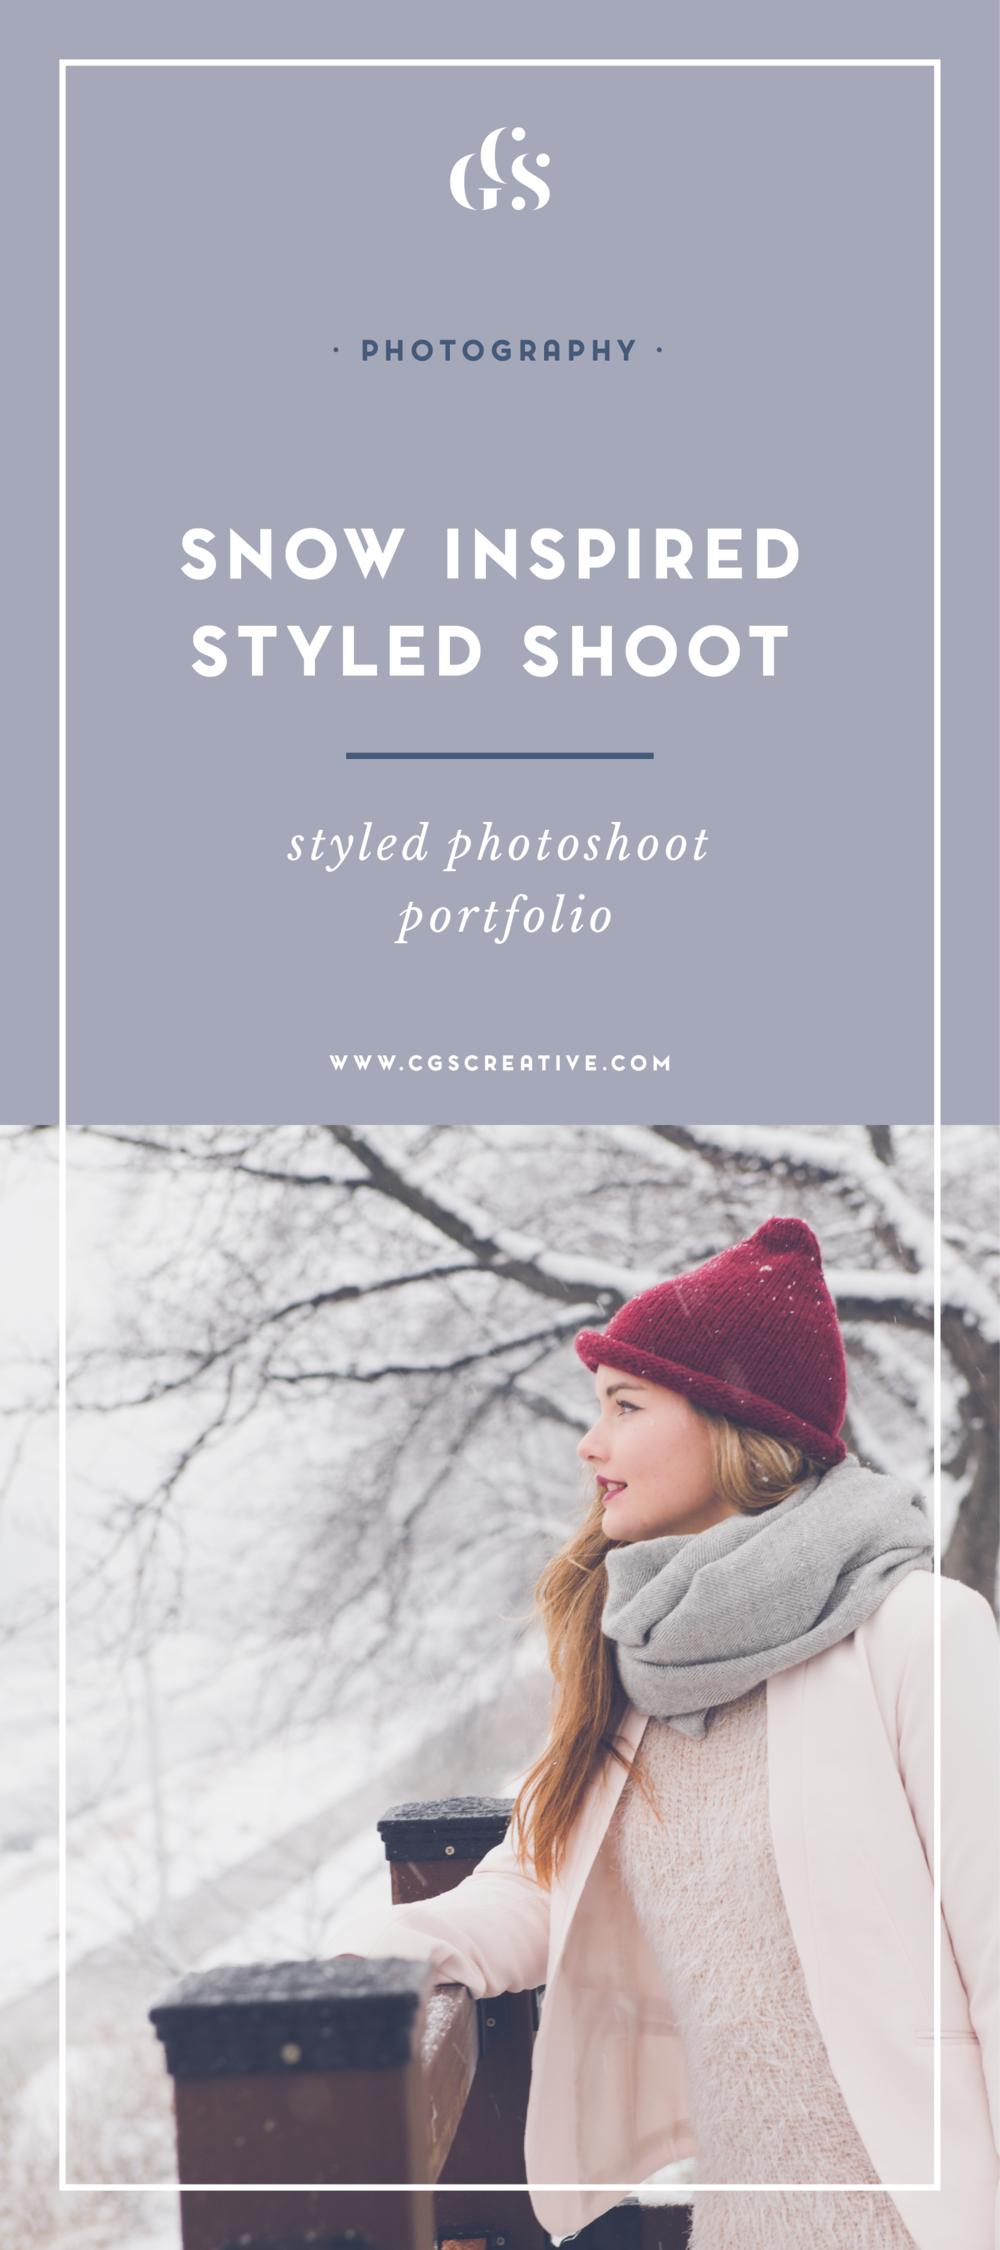 Snow Inspired Styled Photoshoot in South Korea by Roxy Hutton of CGScreative-05.png